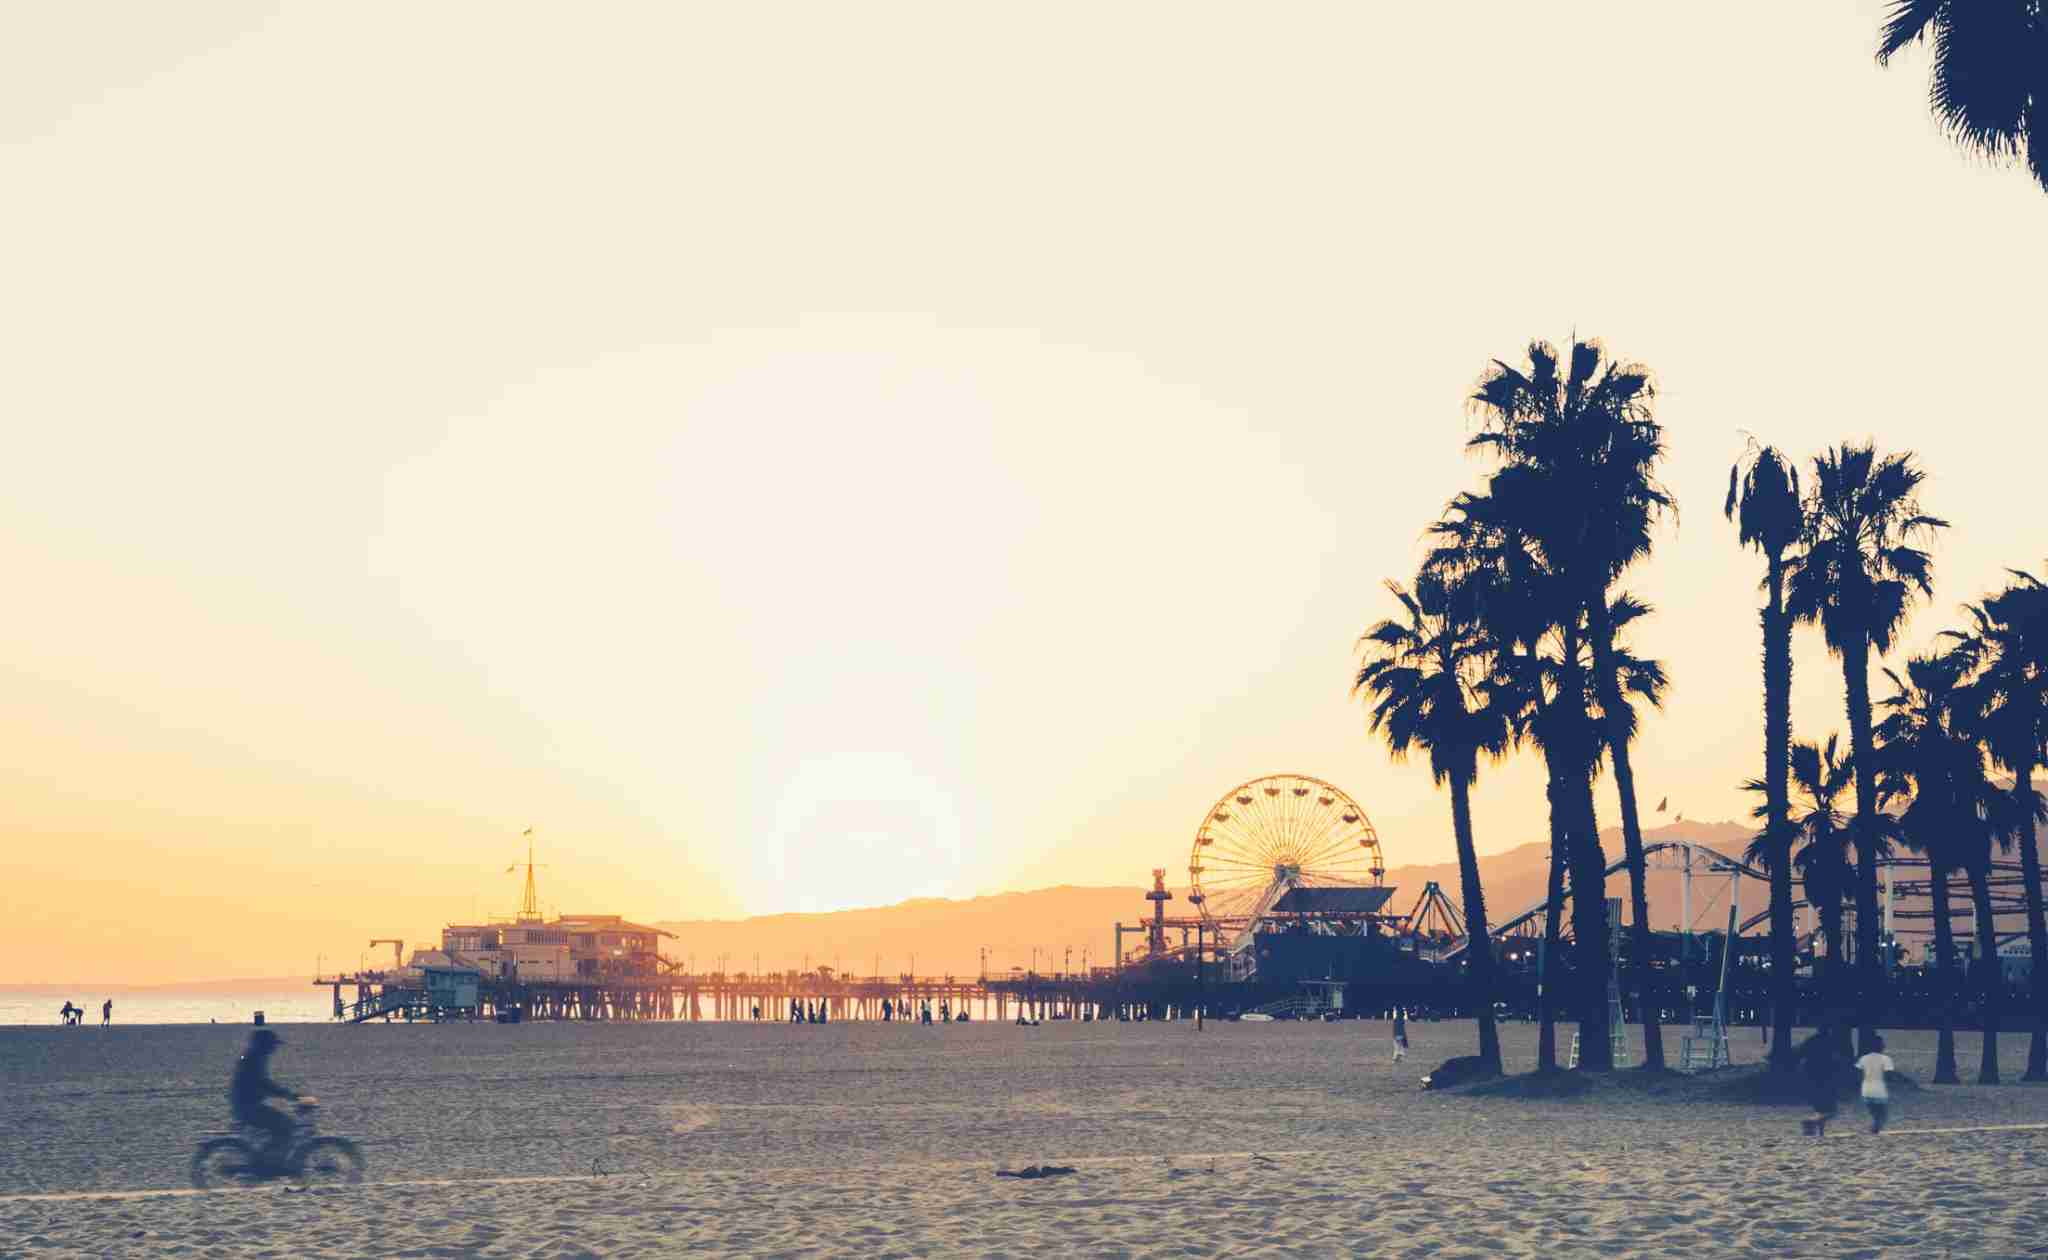 Santa Monica beach and pier at sunset. (photo courtesy of Andreas Aydt)